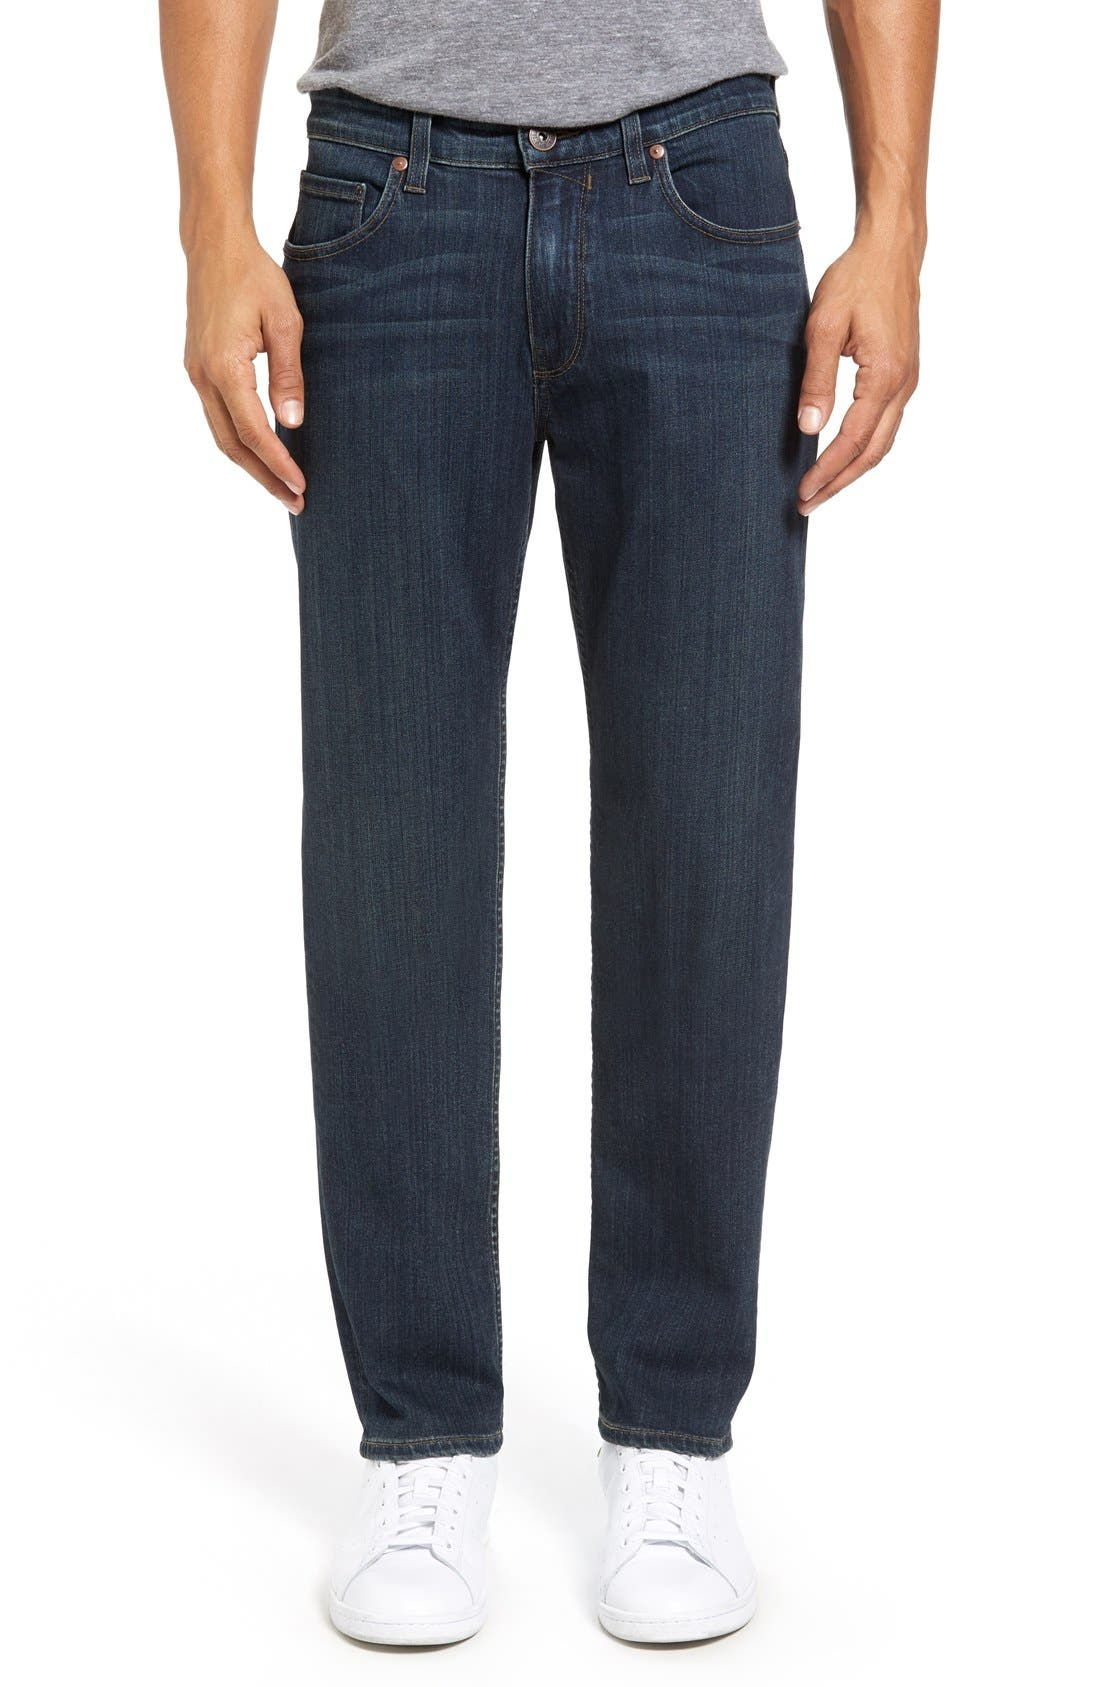 Transcend - Federal Slim Straight Leg Jeans,                             Main thumbnail 1, color,